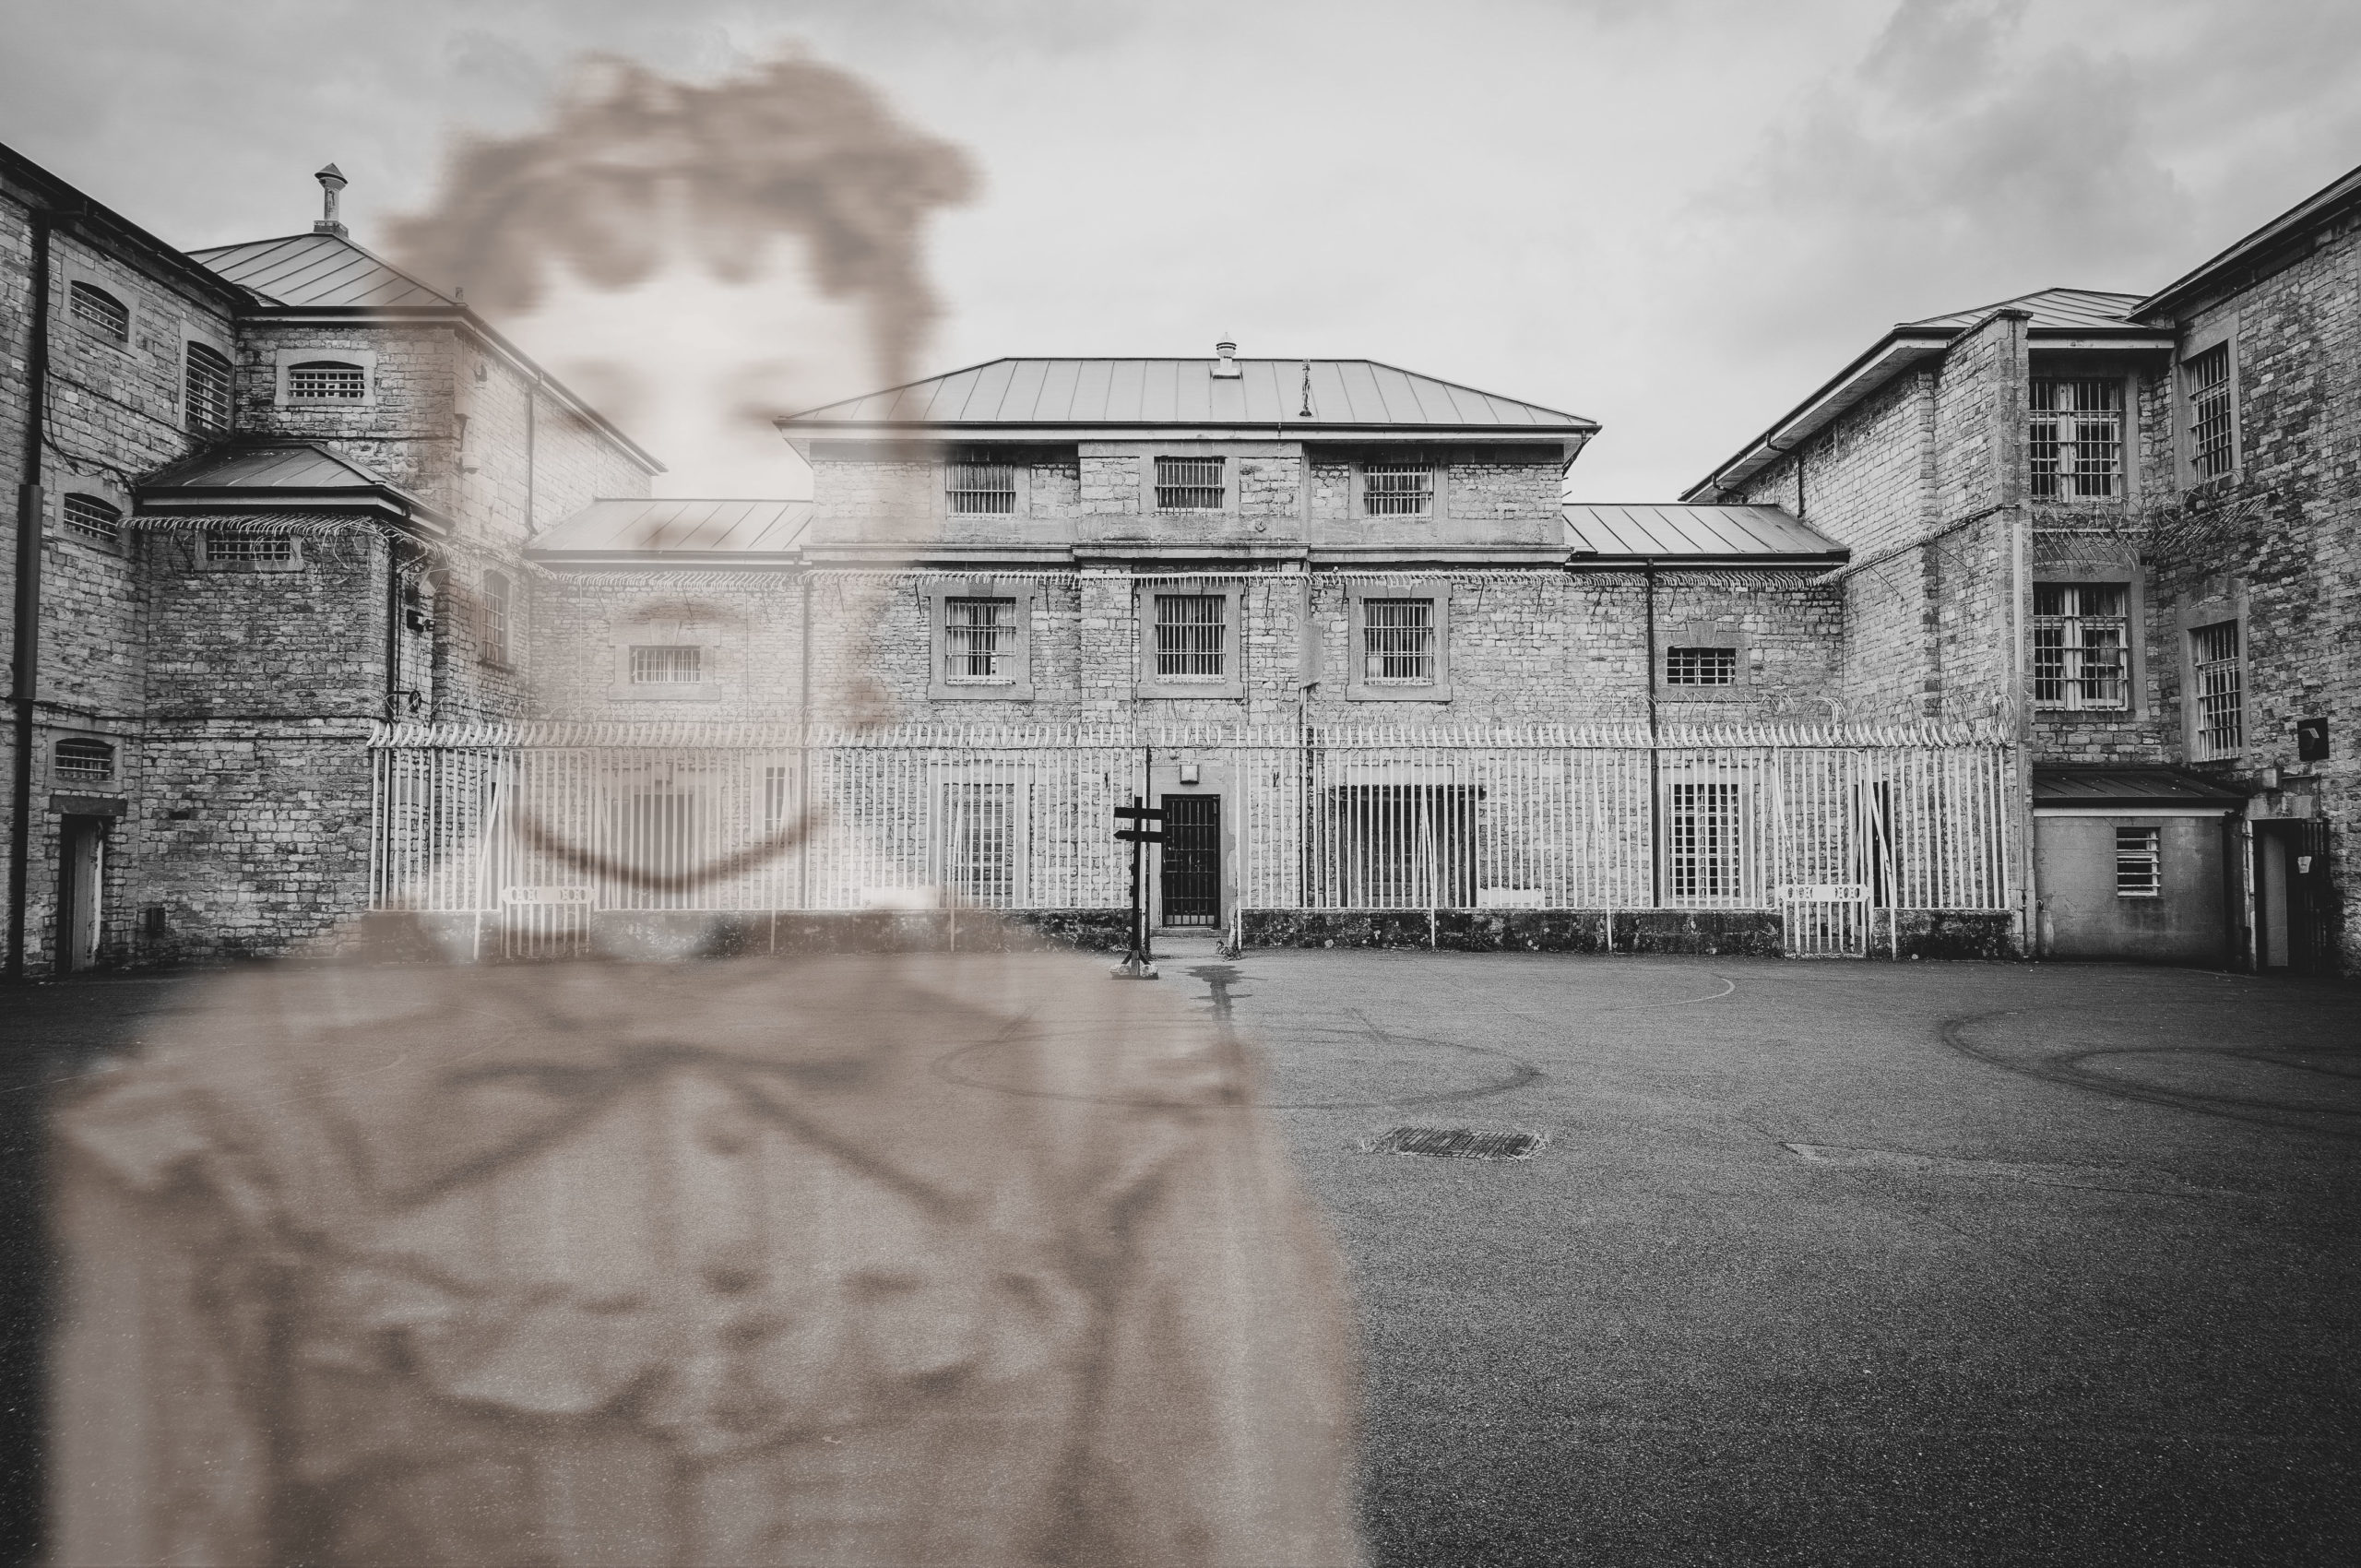 Ghost Stories from Behind Bars ~ The White Lady